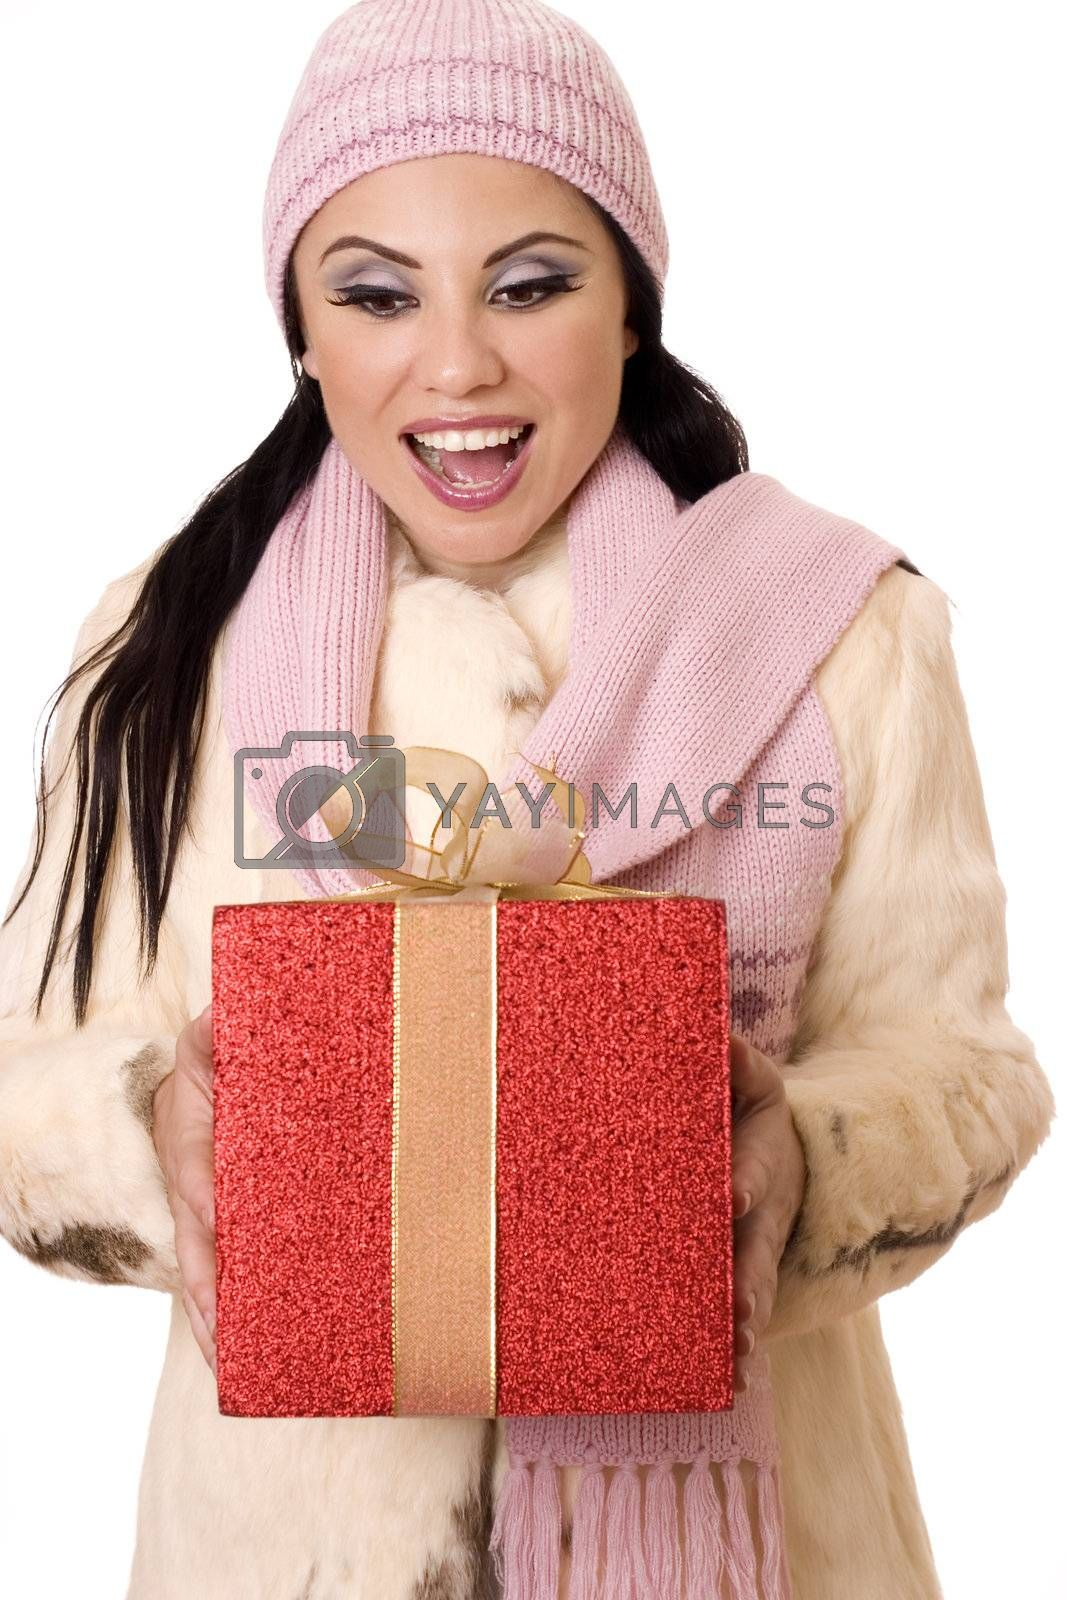 Delightful Surprise - Female holding a large red and gold gift by lovleah